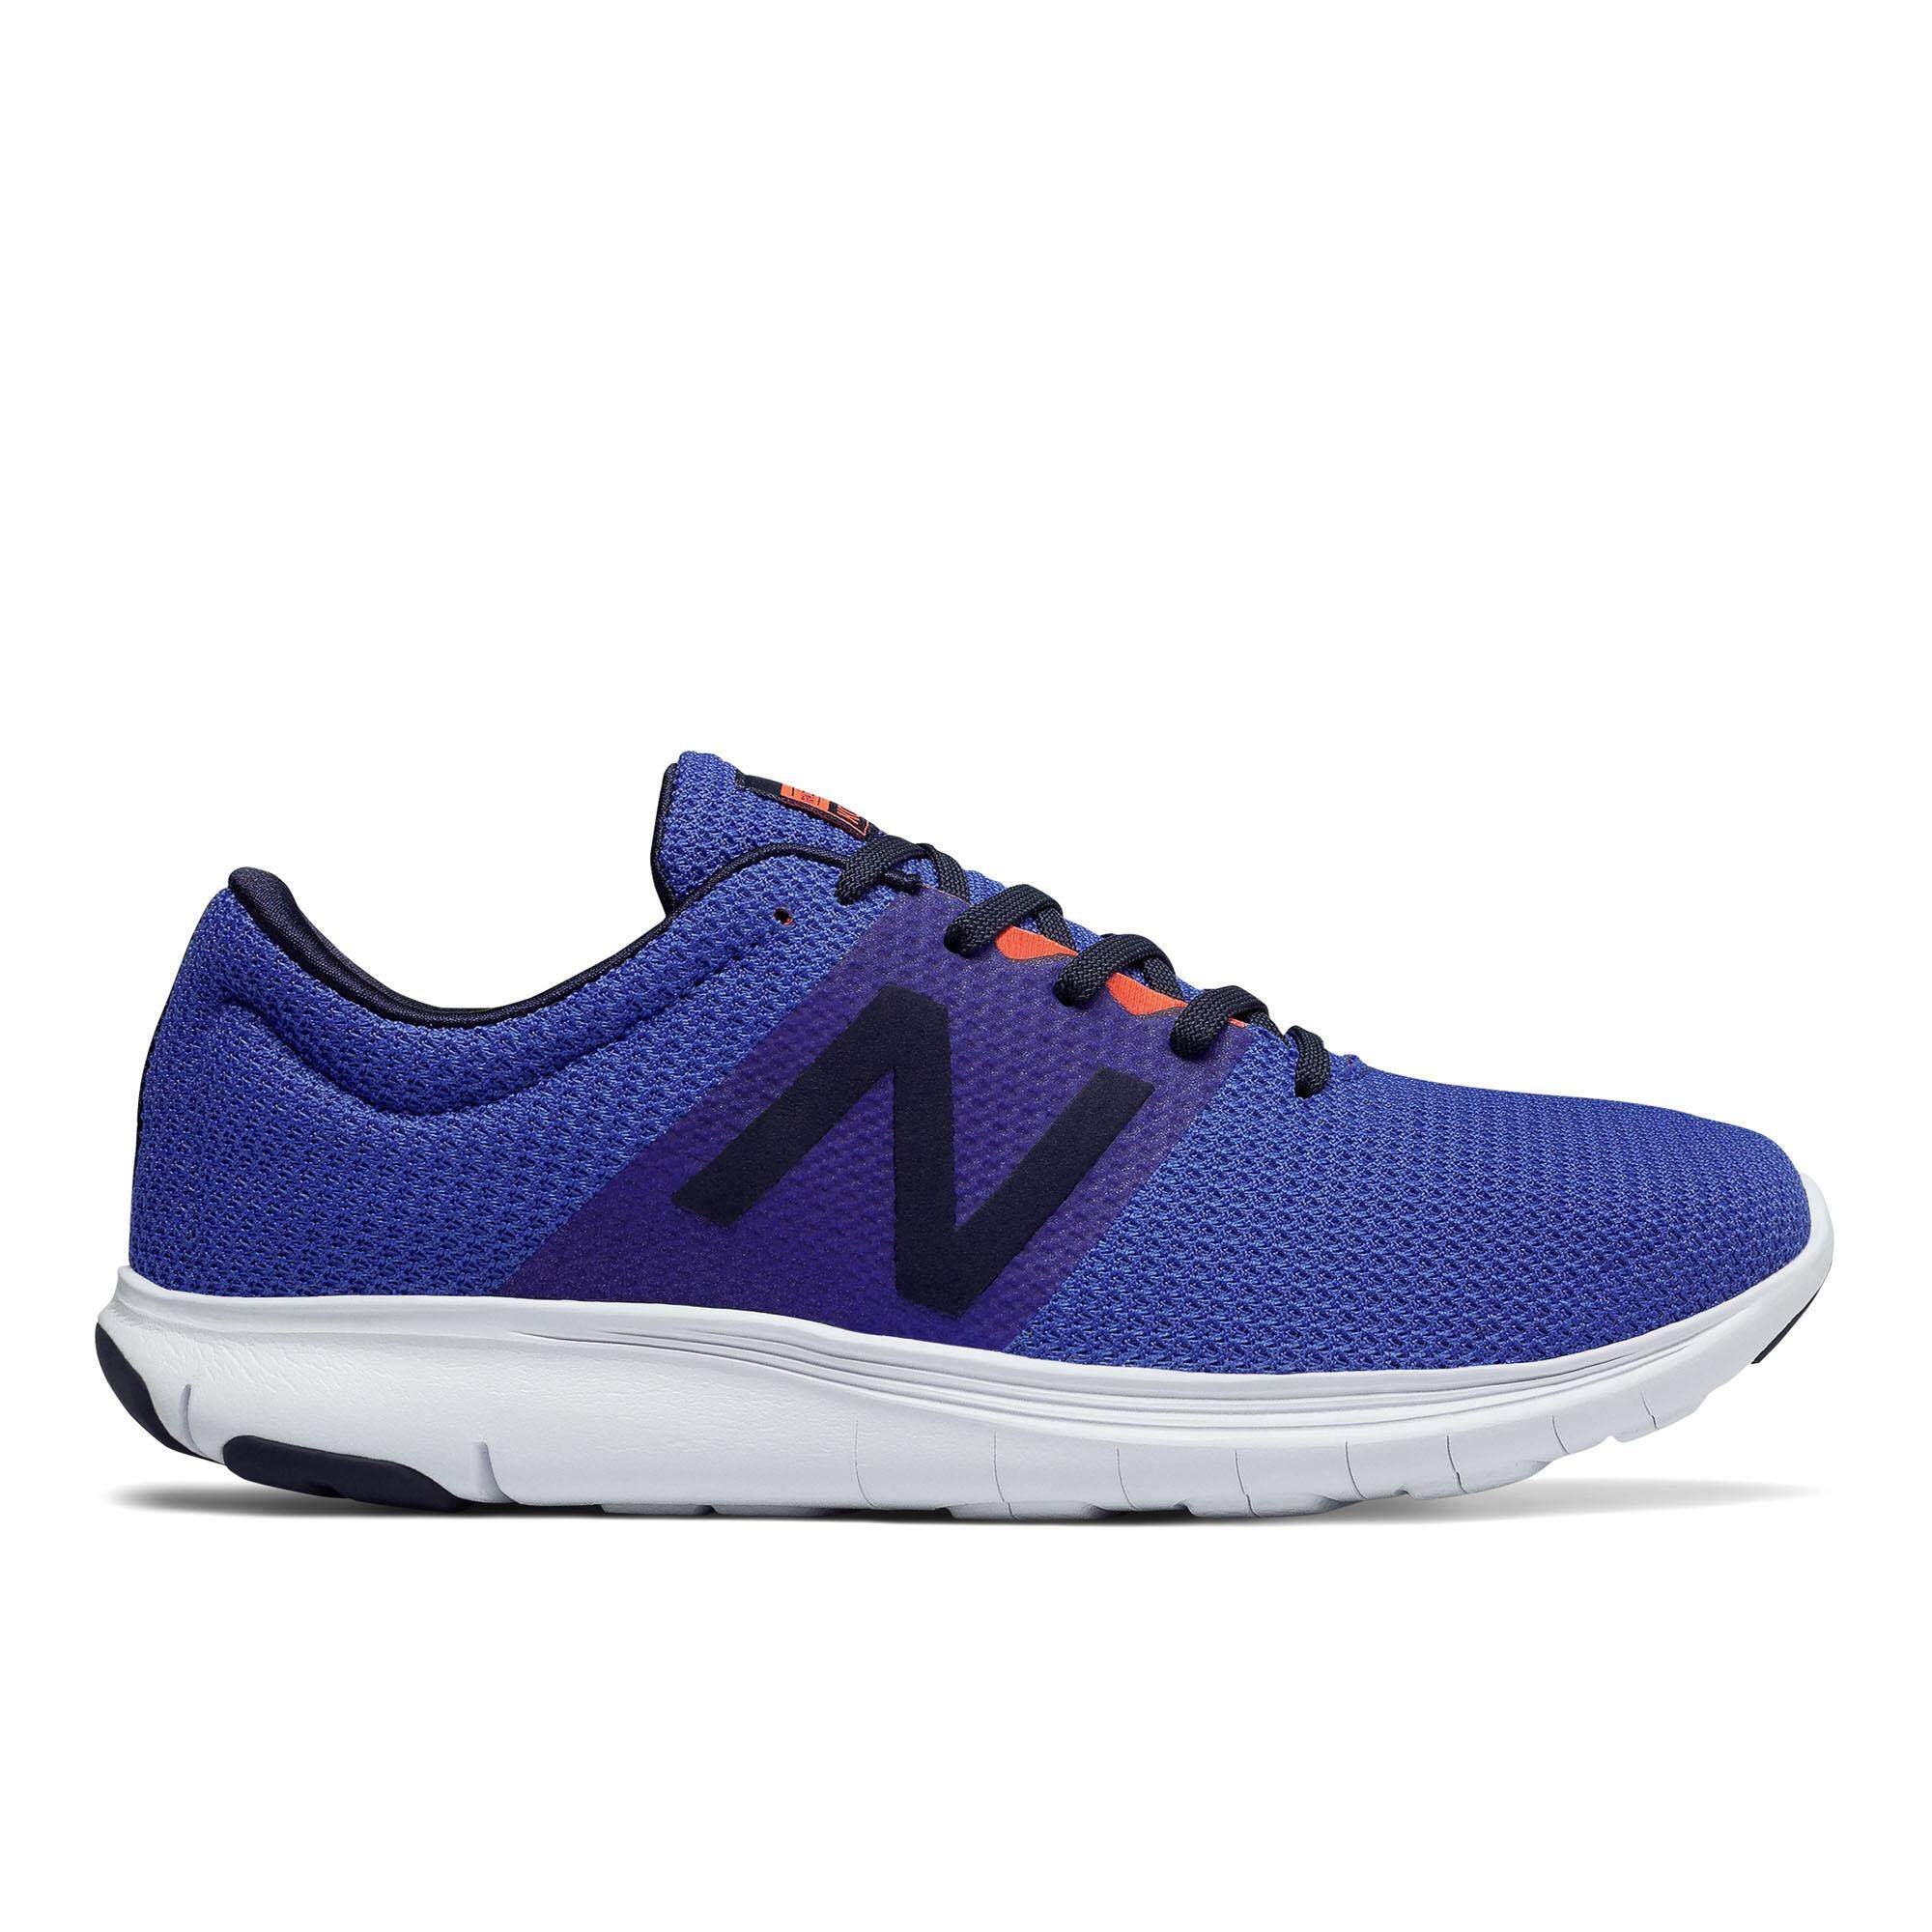 New Balance Men s Shoes price in Malaysia - Best New Balance Men s ... e660af2ddd